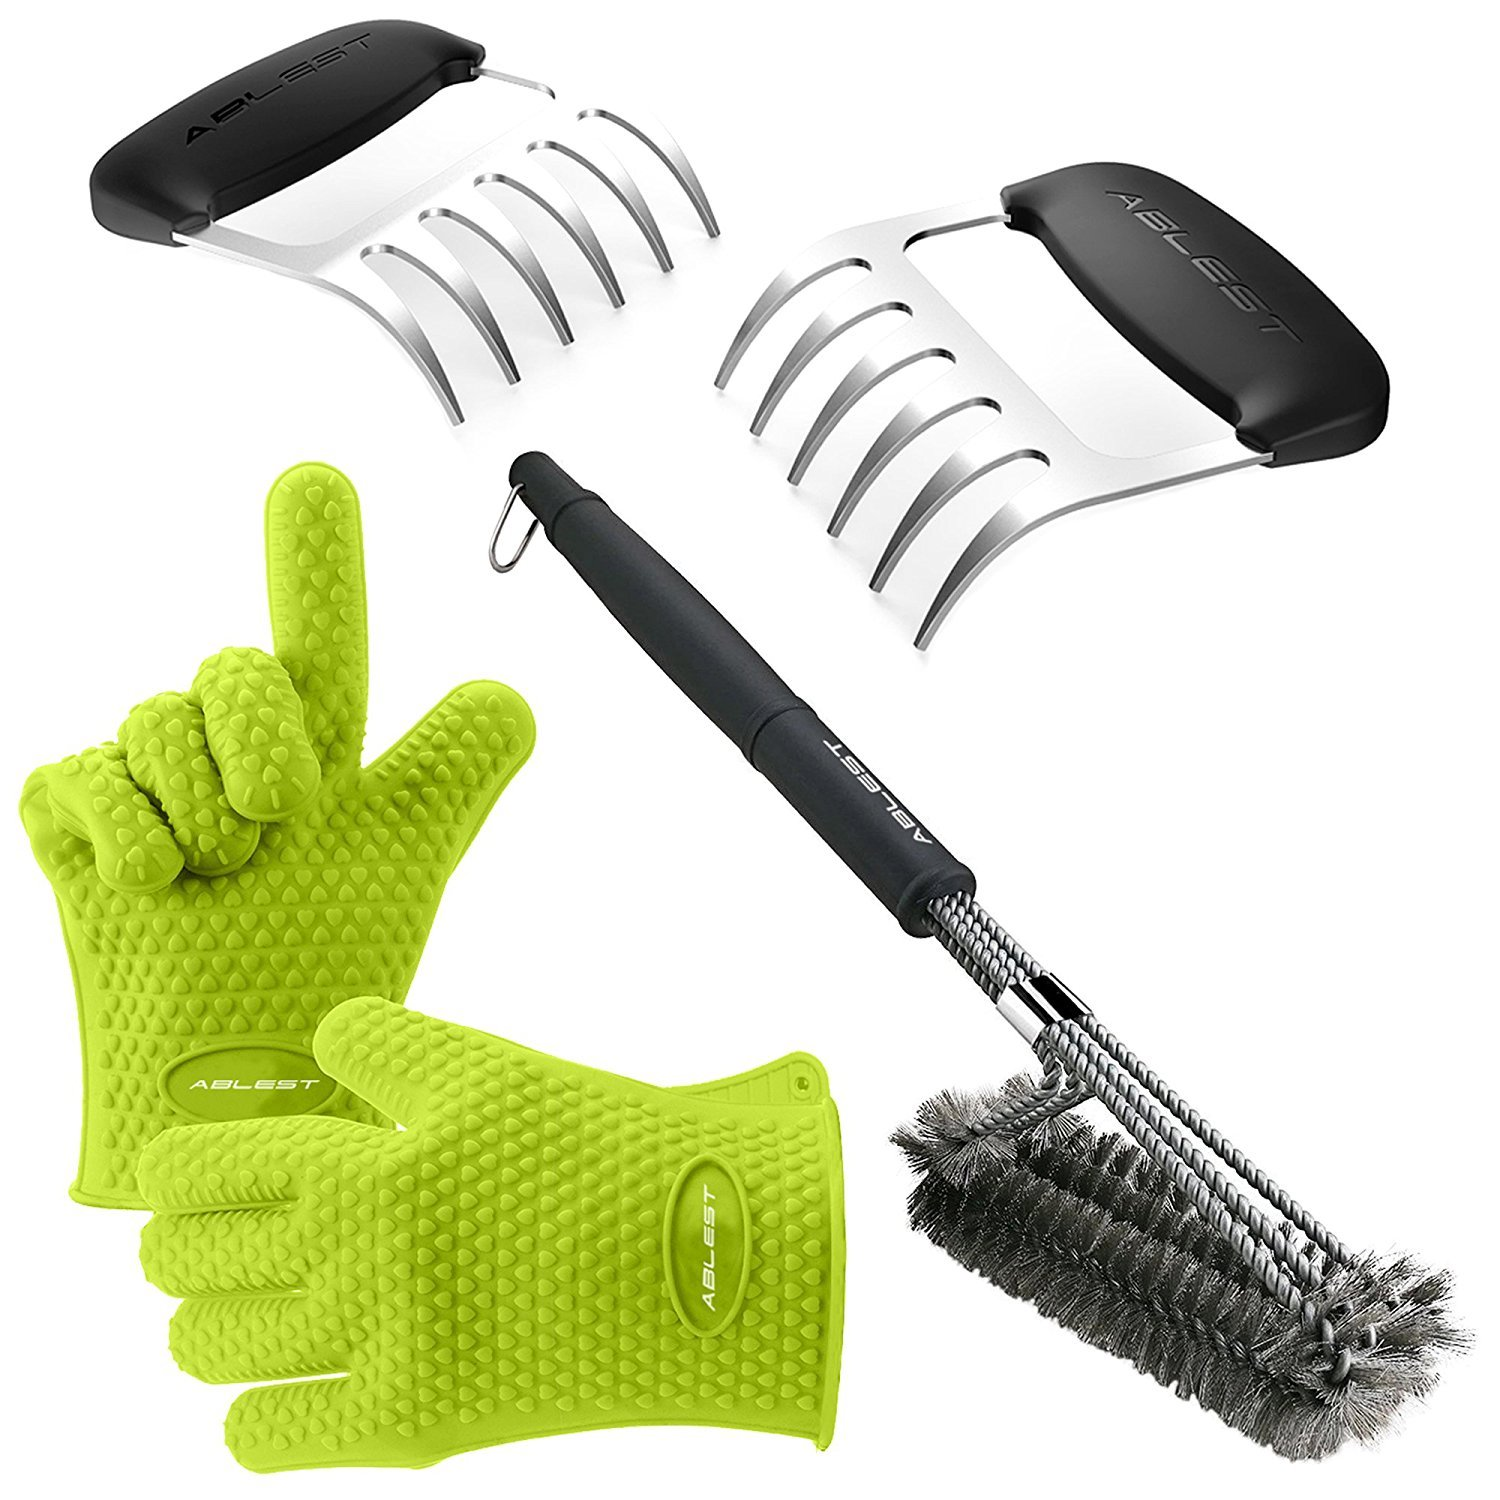 Ablest Silicone BBQ 3 Piece Set - Heat Resistant Gloves & Bear Meat Shredder Claws w/Grill Brush